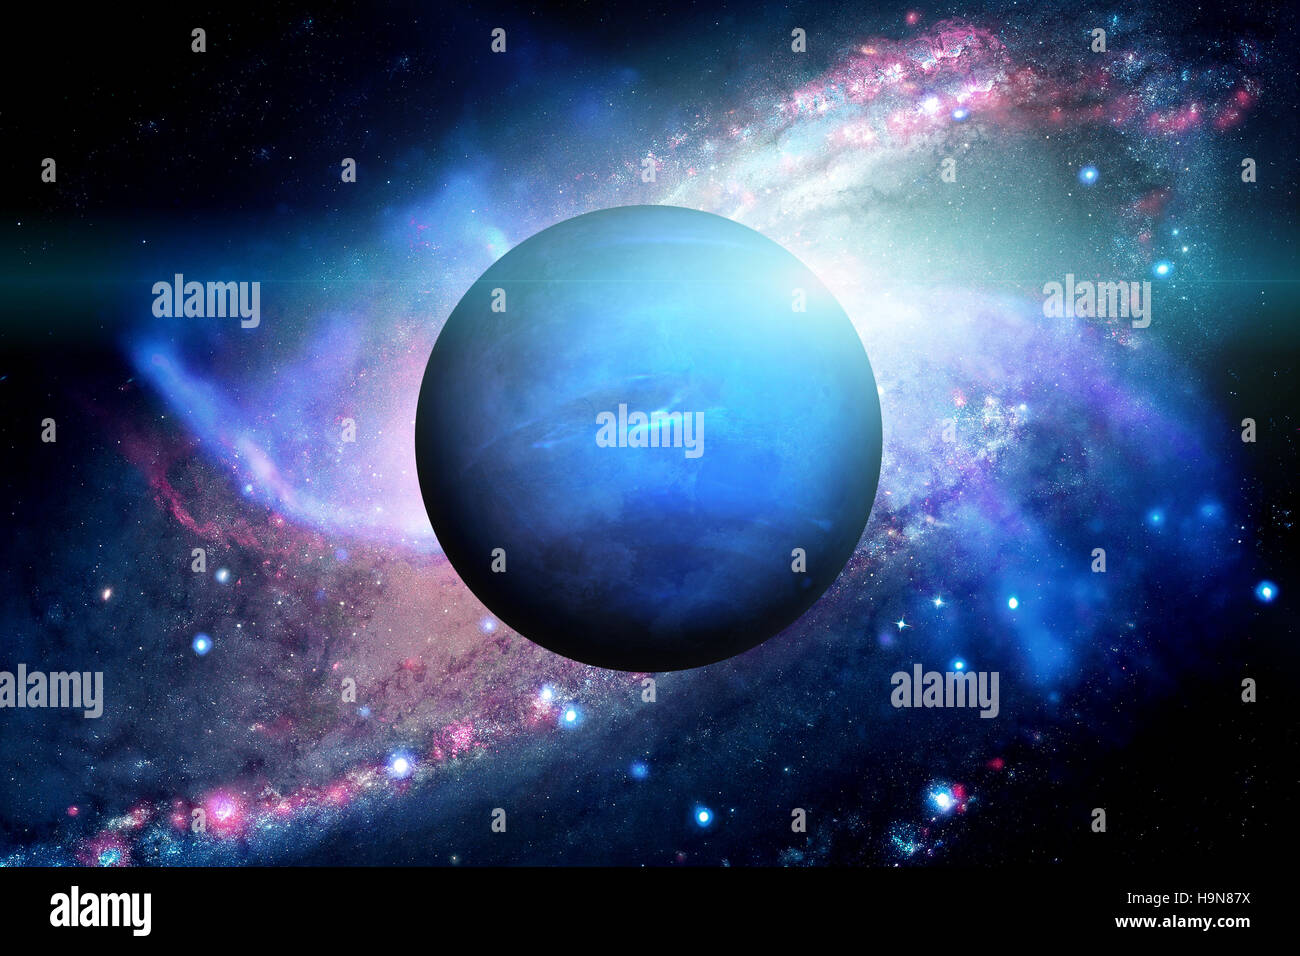 the characteristics of neptune the outermost gas giant in the solar system